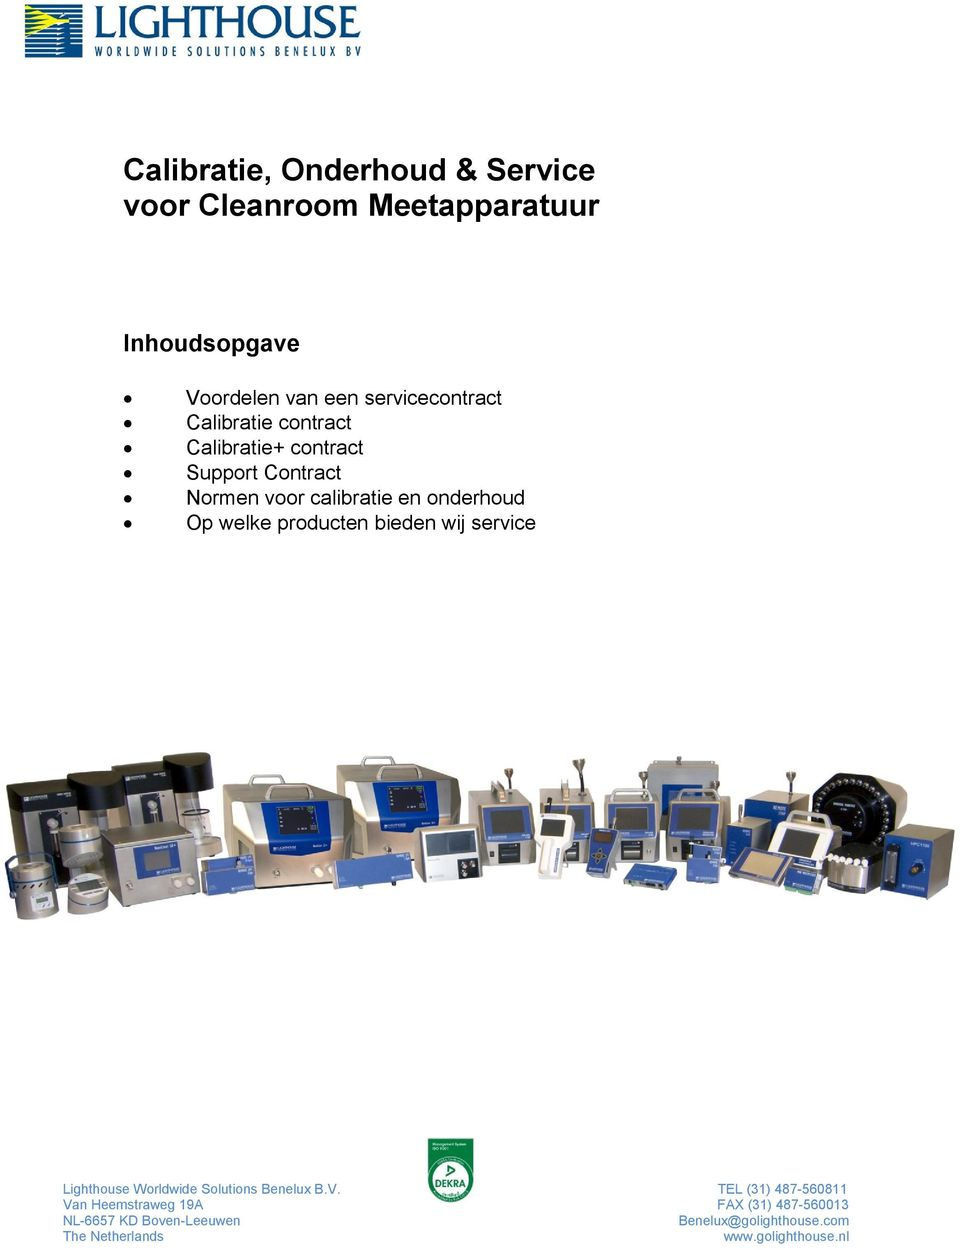 servicecontract Calibratie contract Calibratie+ contract